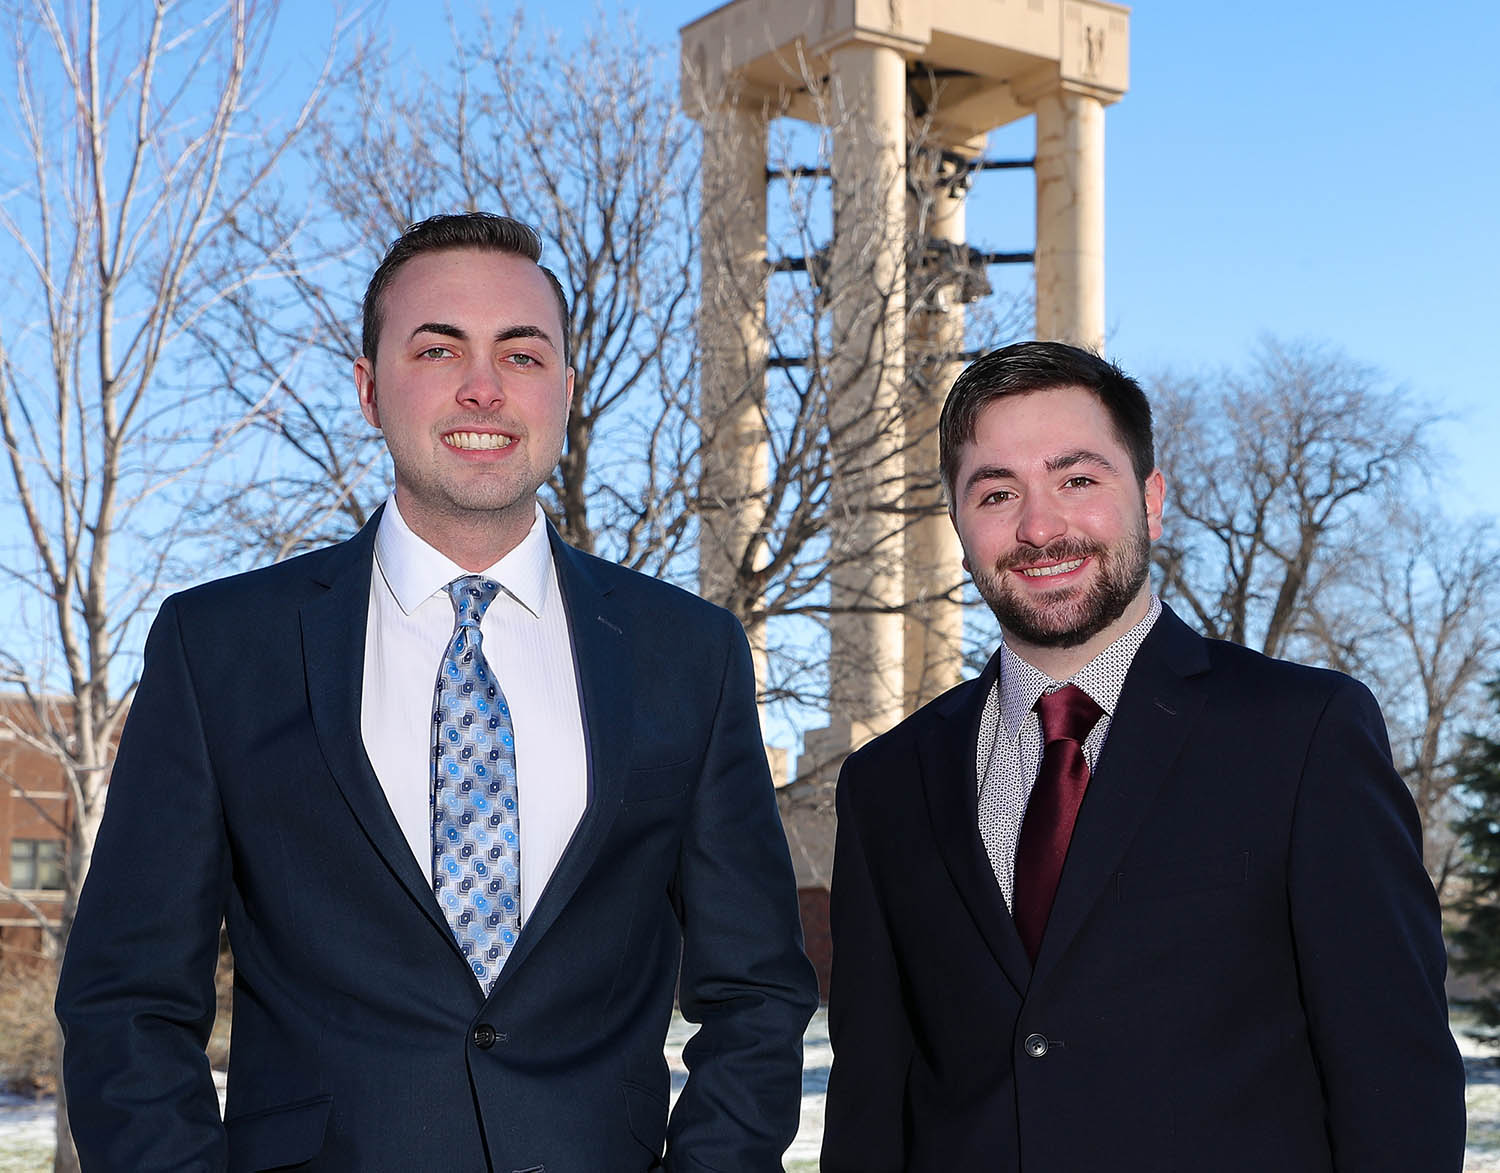 Max Beal of Kenesaw, left, and Trey Janicek of Bridgeport were elected UNK student body president and vice president in March. (Photos by Corbey R. Dorsey, UNK Communications)